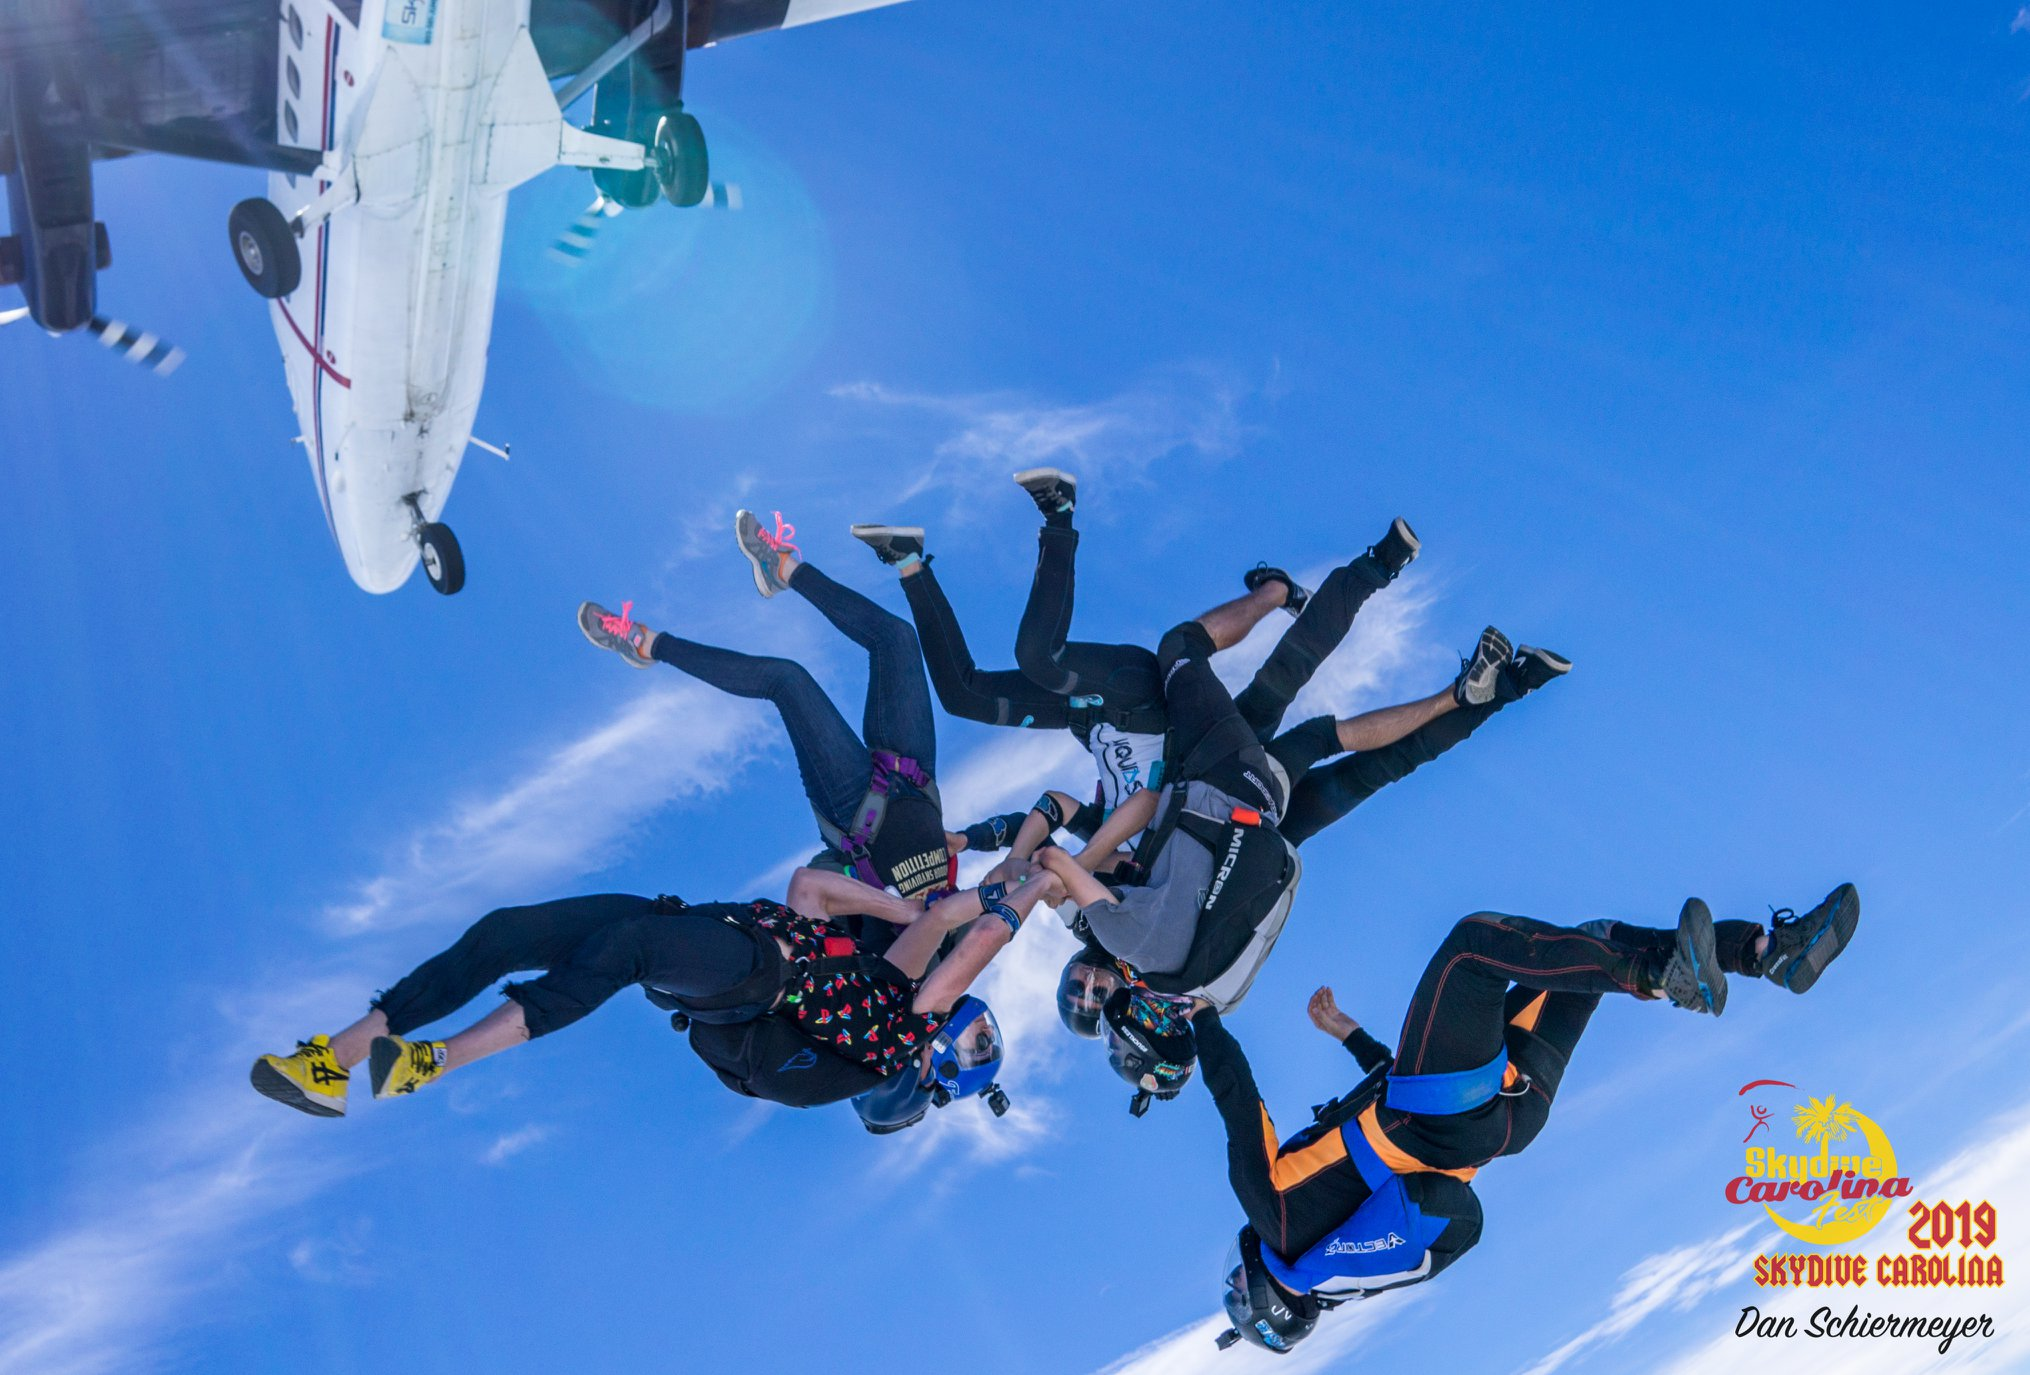 skydiving improve your quality of life